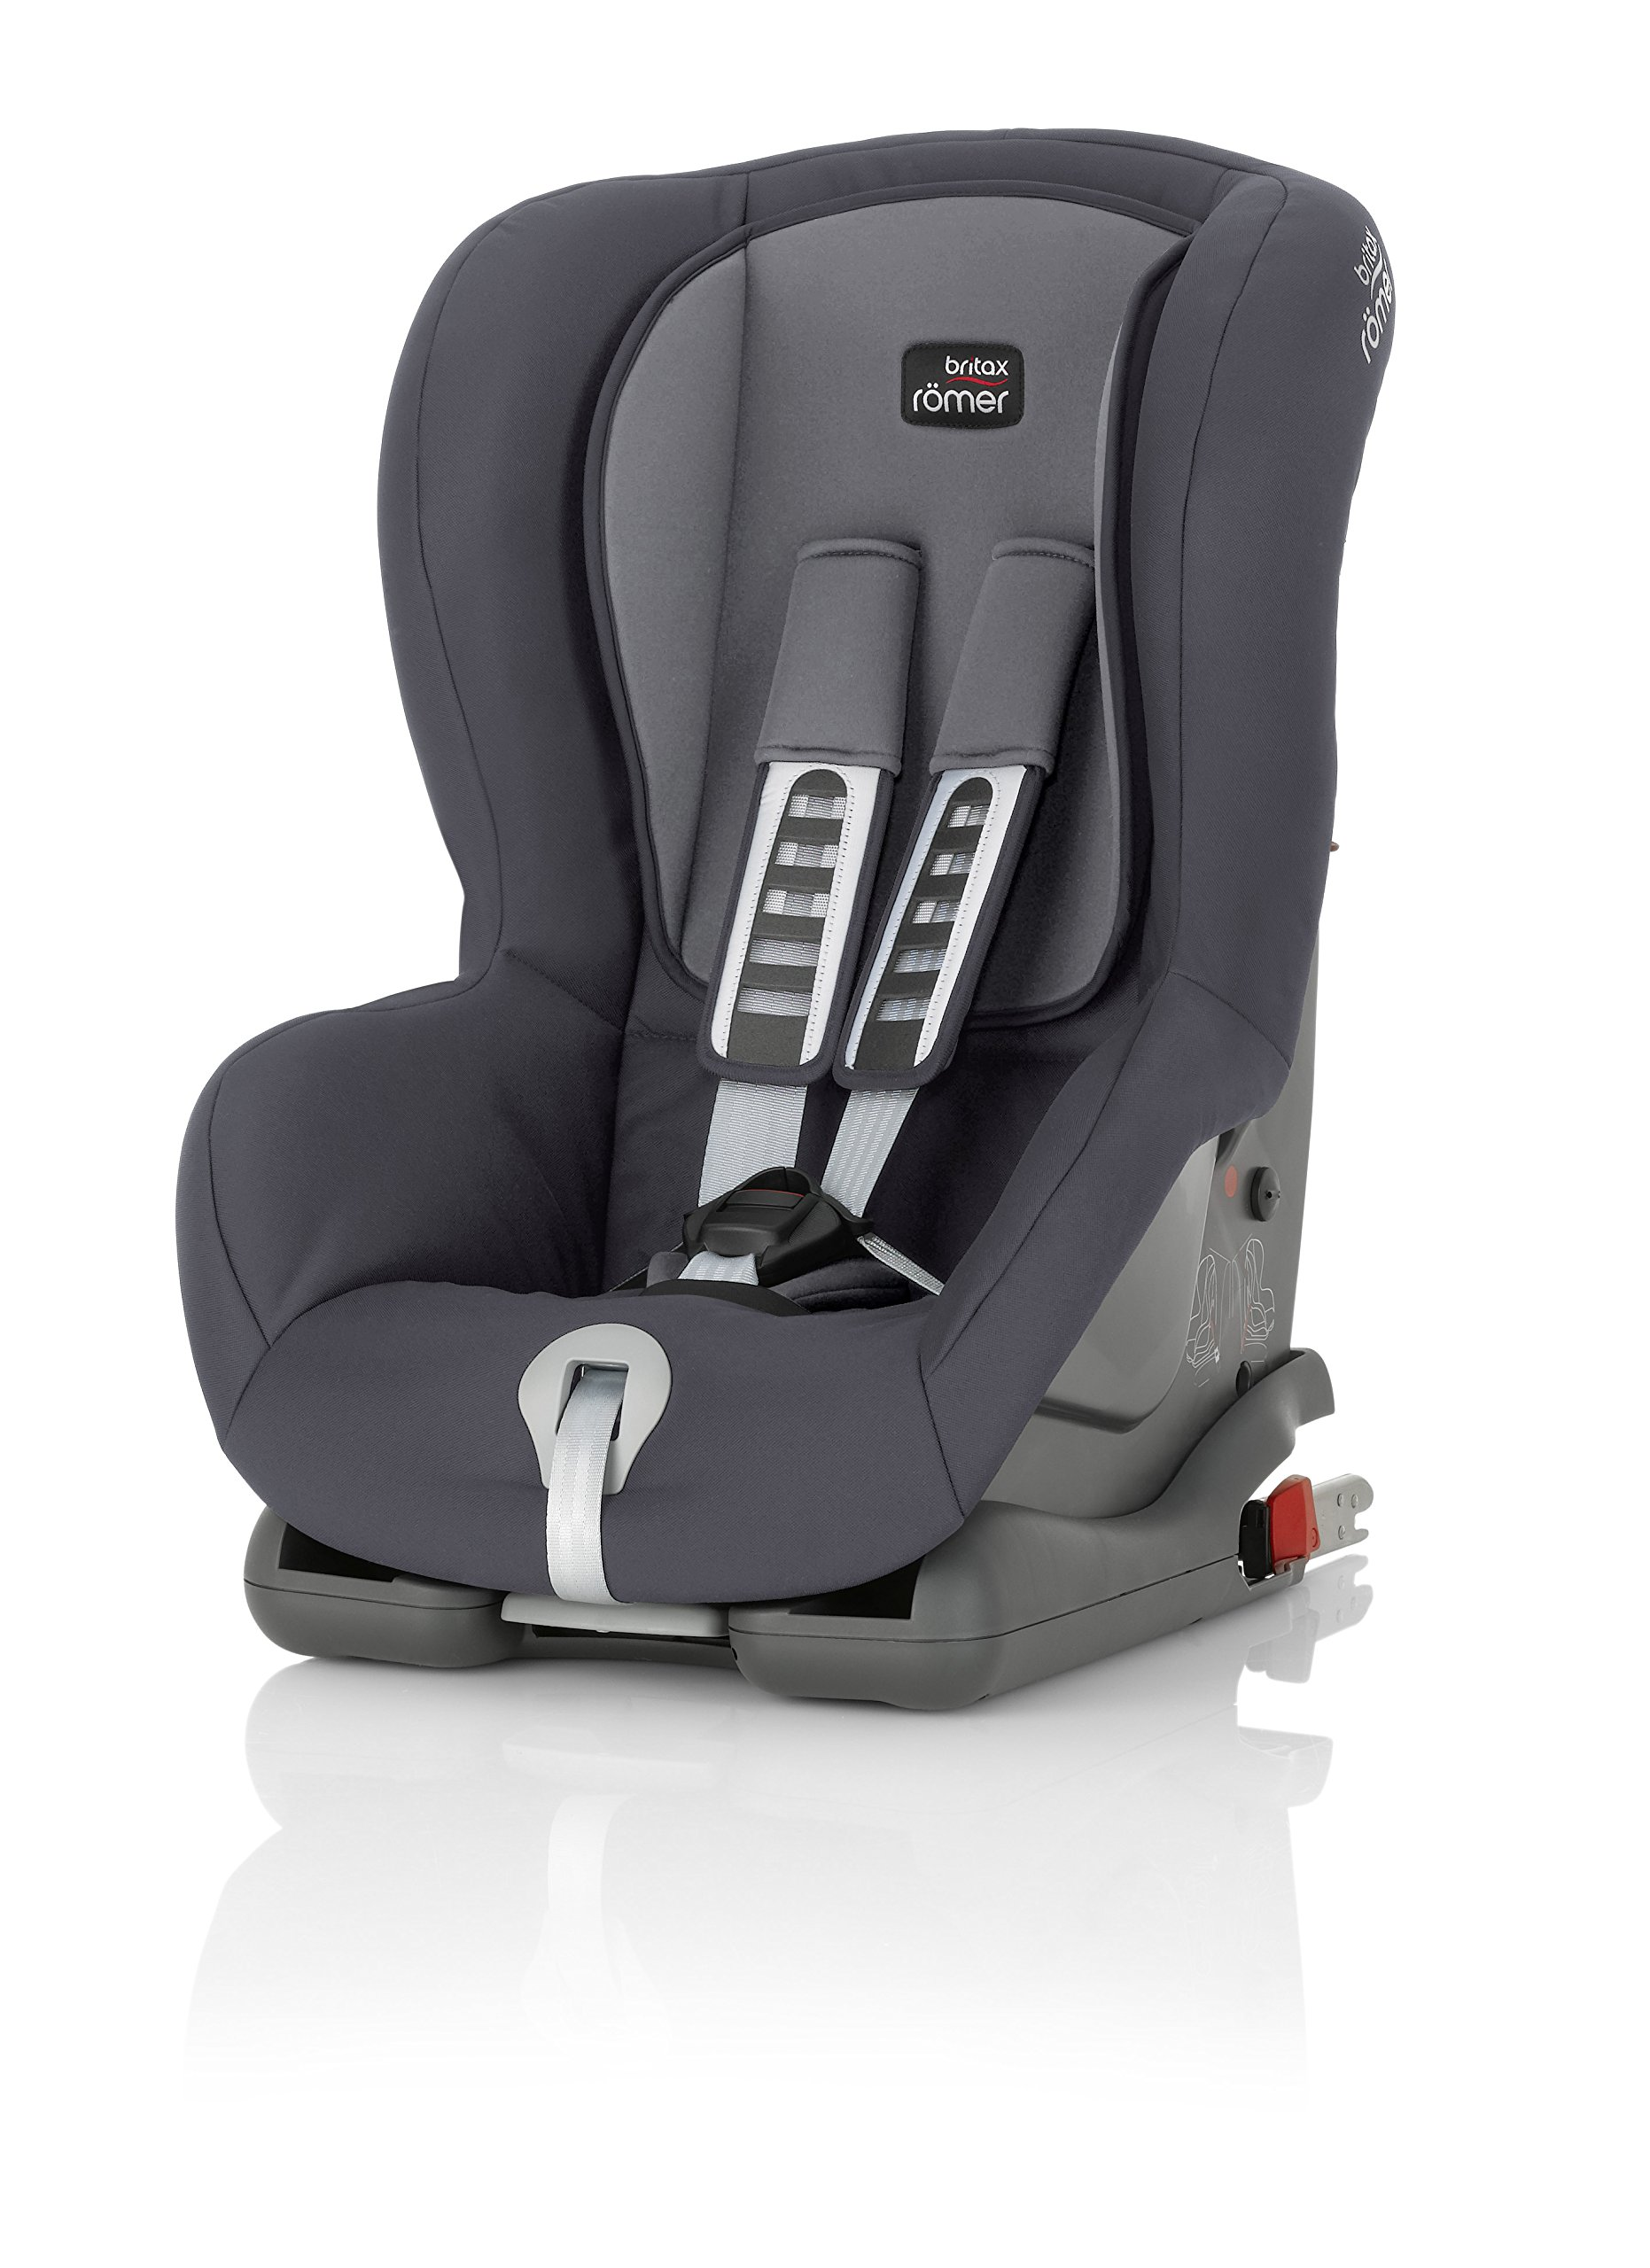 Britax Römer car seat, DUO PLUS Isofix group 1 (9-18 kg),Storm Grey Britax Römer Compatible with ISOFIX or 3-point seat belt installation this seat caters to any car Comfort without compromise - deep, padded side wings and multi-position recline Pivot link system to reduce forward movement in the event of an accident 1